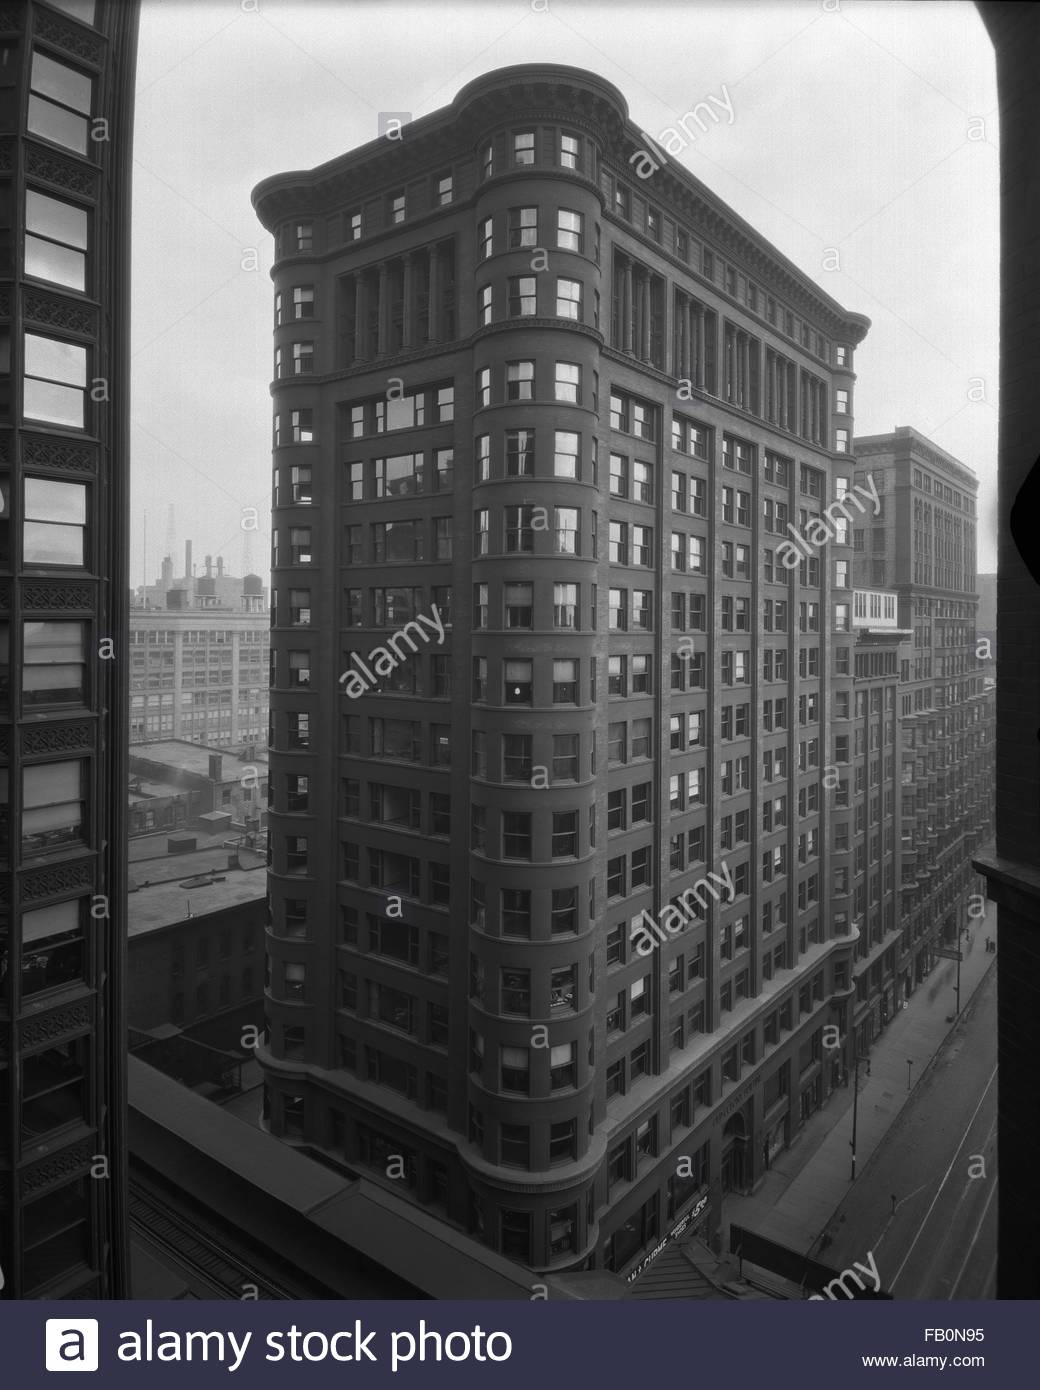 Exterior view of the Old Colony Building, an office building at 407 South Dearborn Street in Chicago. 1932 Apr. - Stock Image